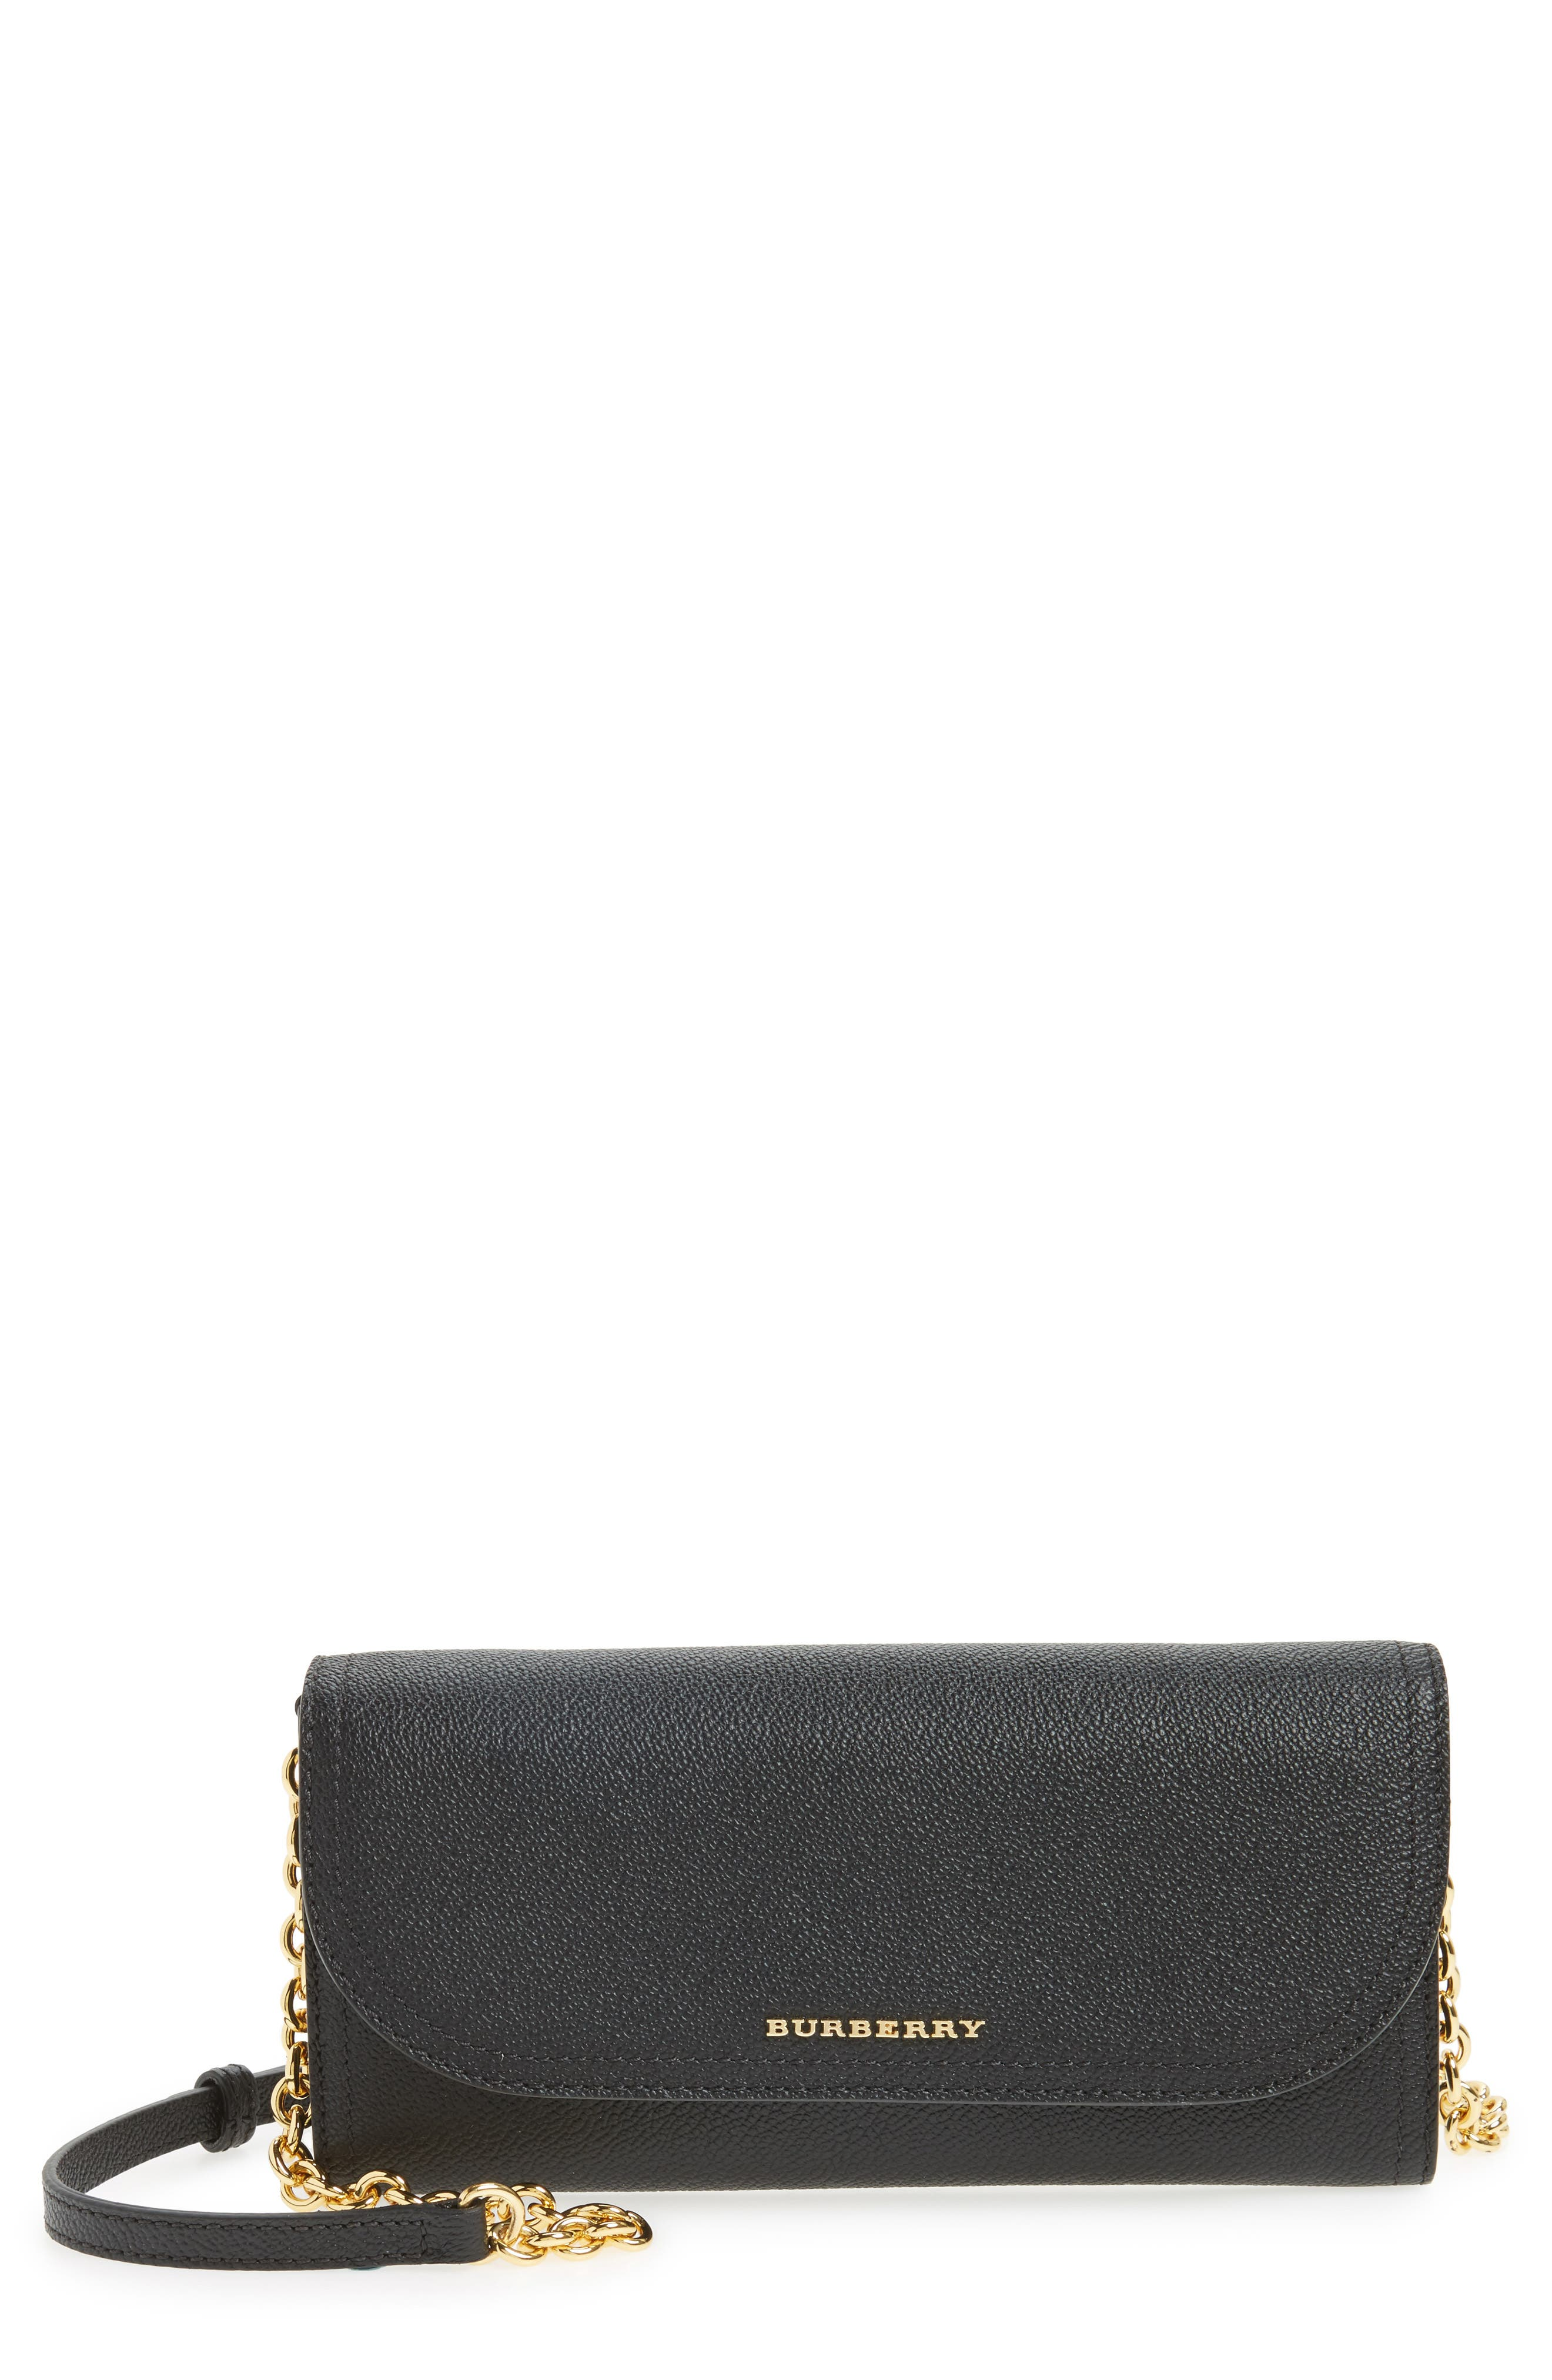 Burberry Henley Leather Wallet on a Chain